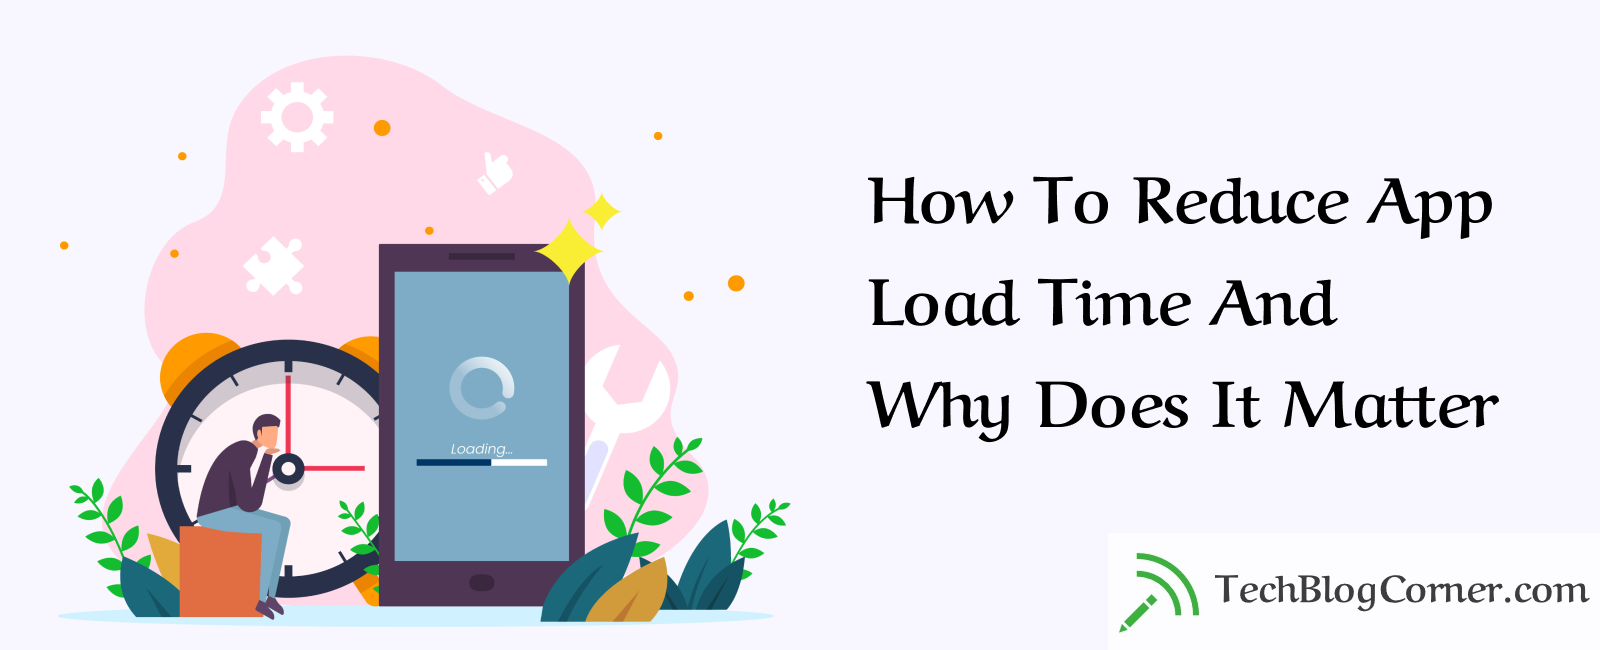 How To Reduce App Load Time And Why Does It Matter